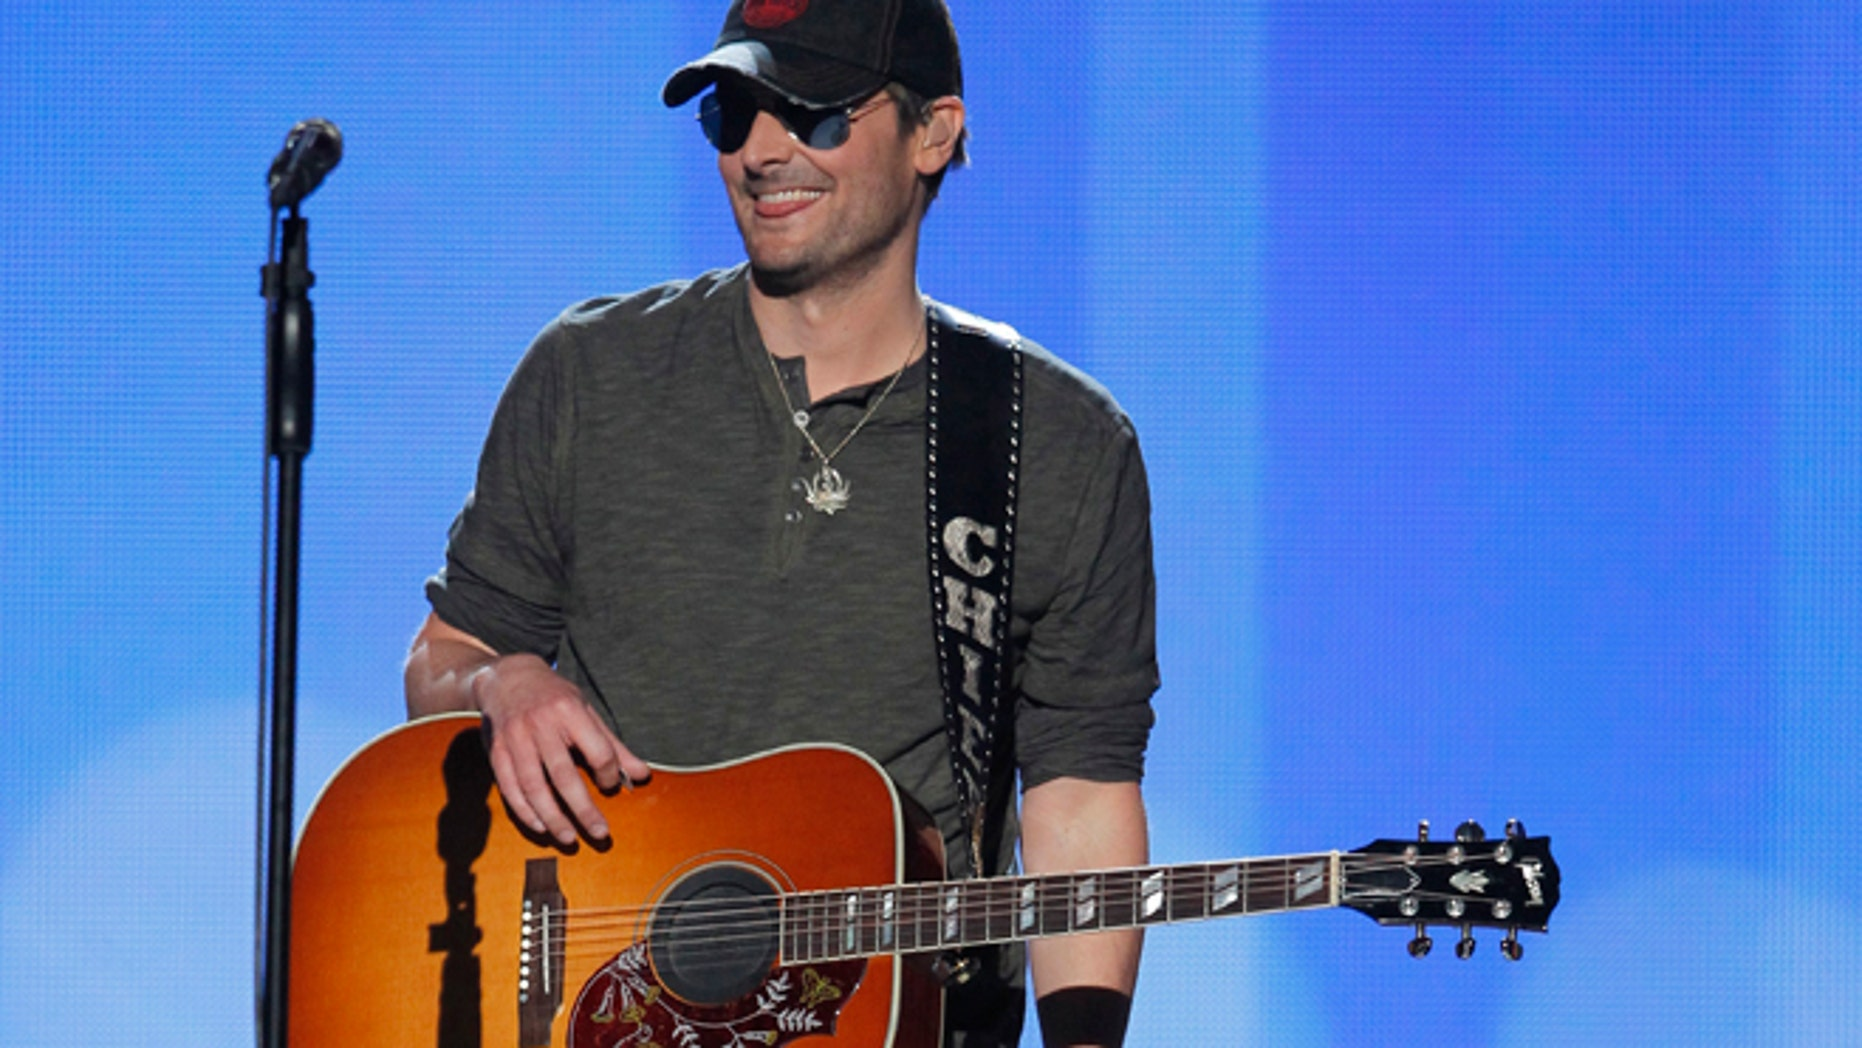 """Singer Eric Church smiles after performing """"Springsteen"""" at the 47th annual Academy of Country Music Awards in Las Vegas, Nevada, April 1, 2012."""